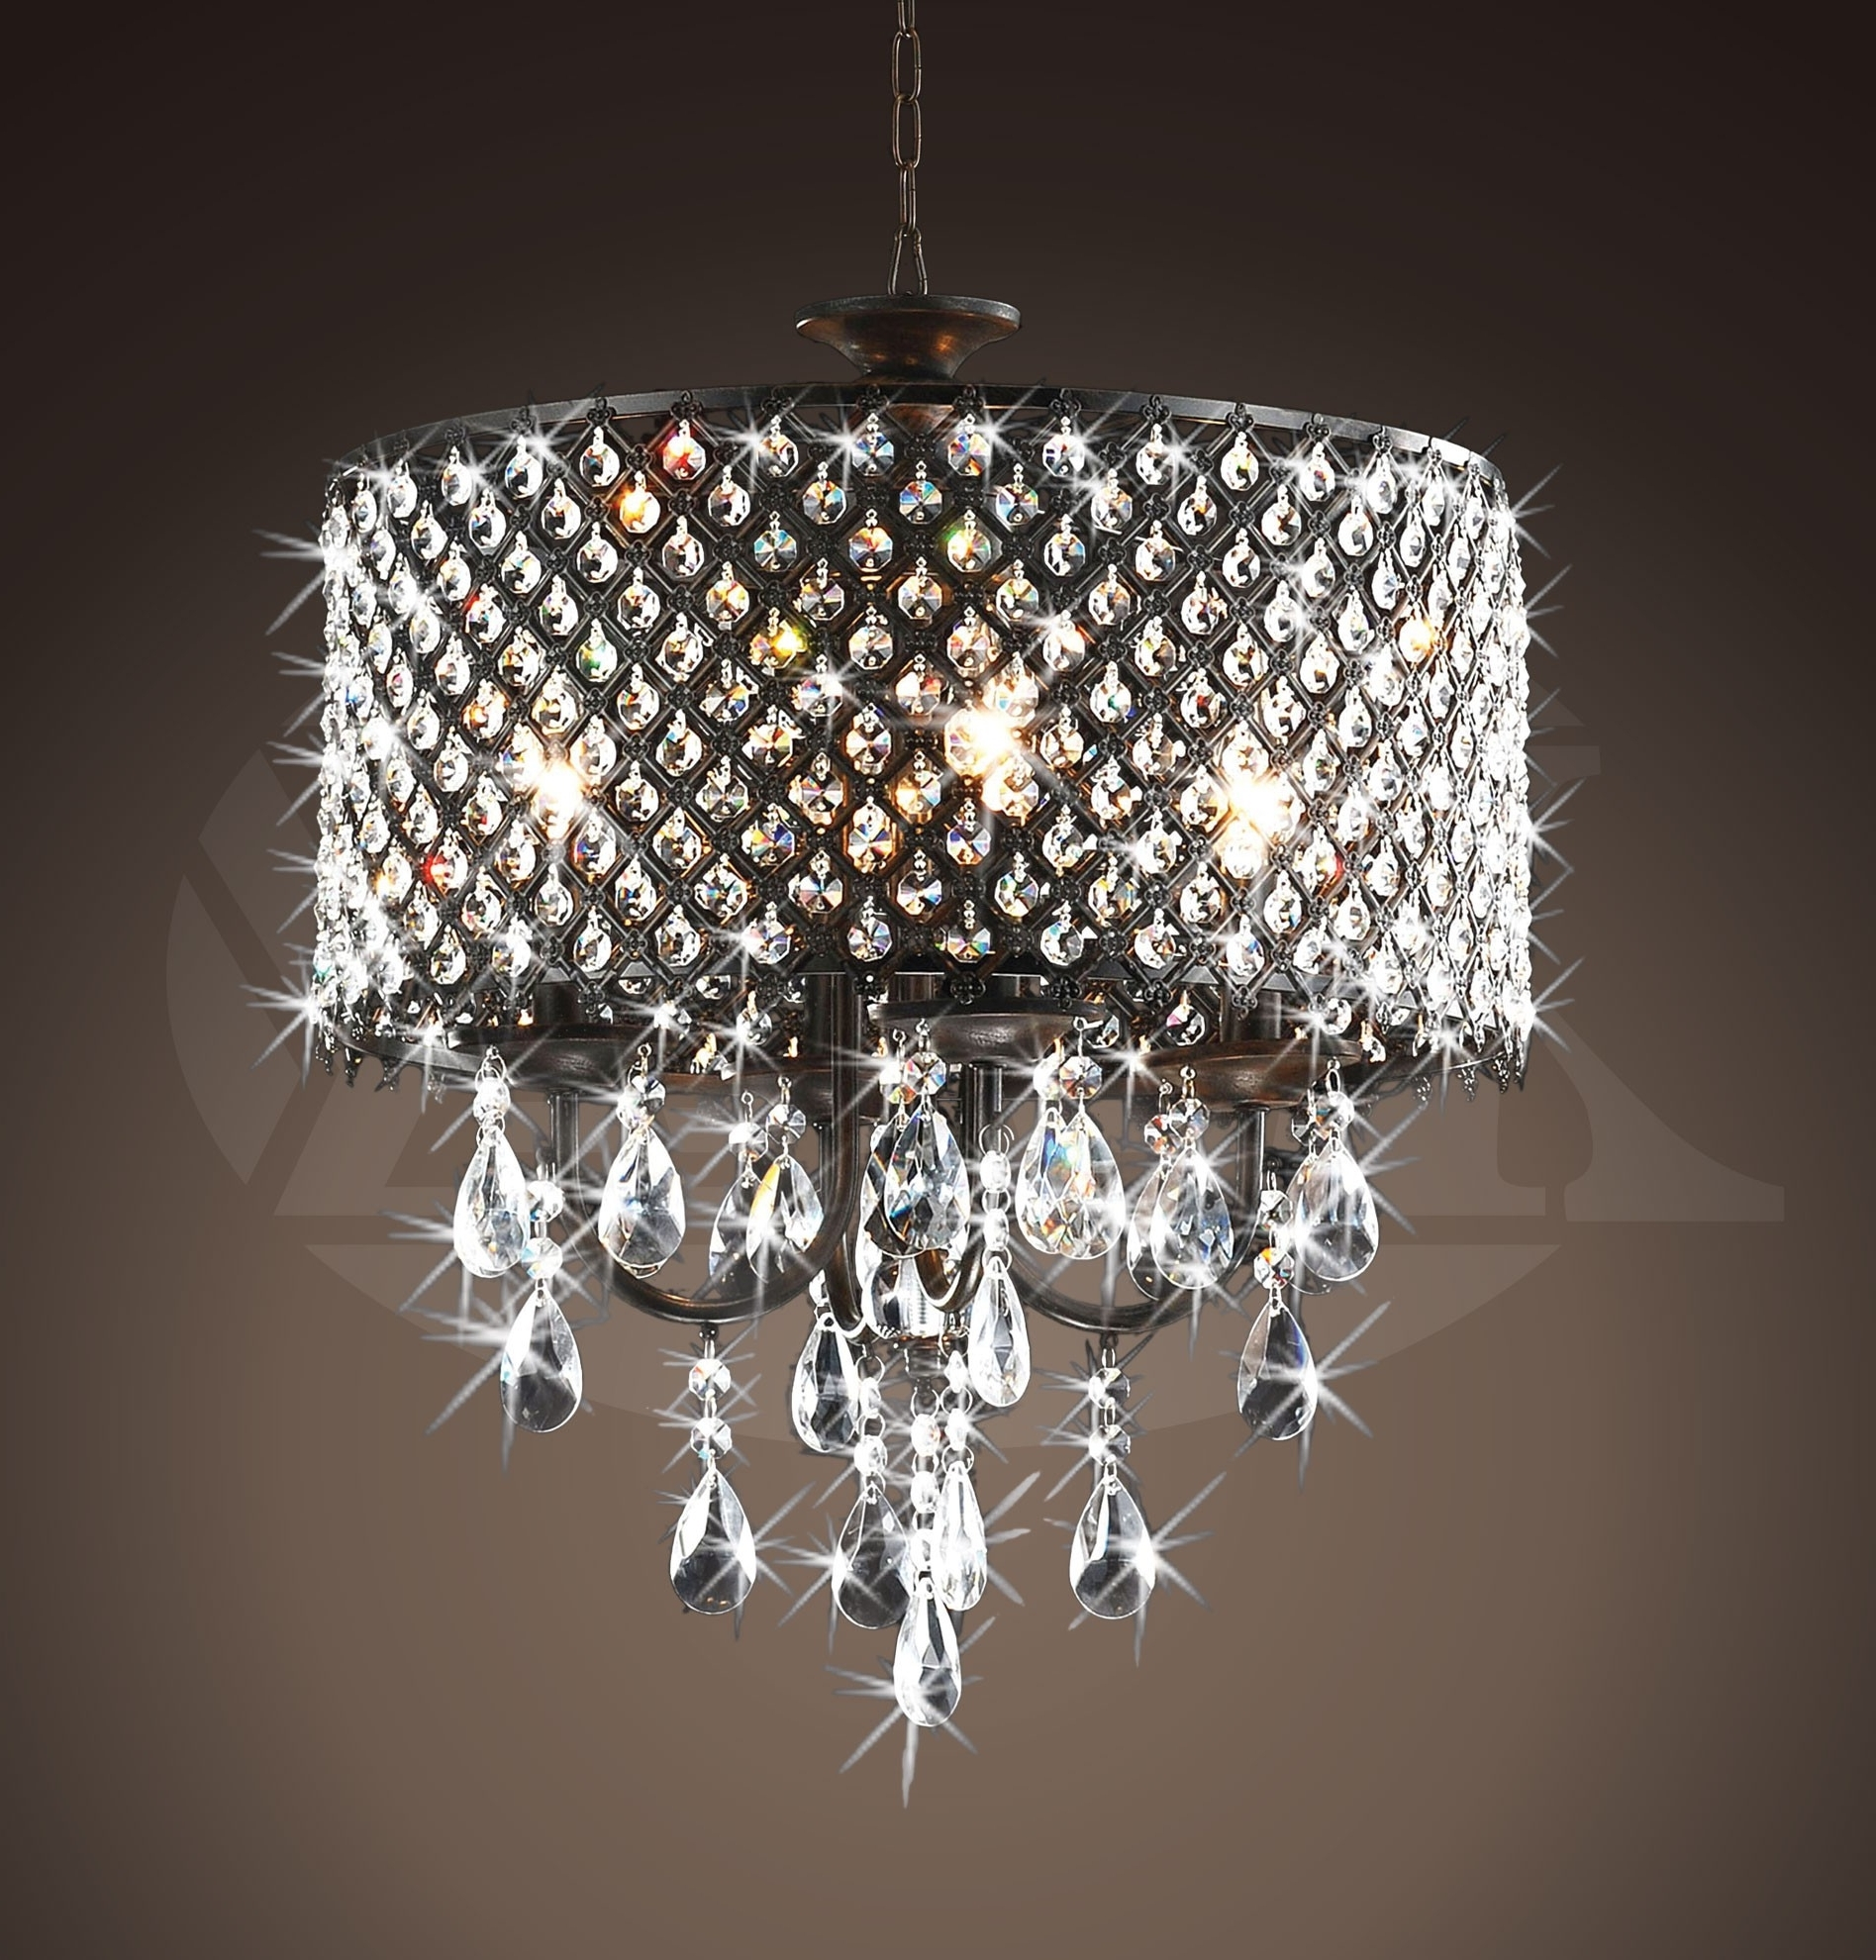 Widely Used Sparkly Chandeliers For Rachelle 4 Light Round Antique Bronze Brass Crystal Chandelier (View 15 of 15)